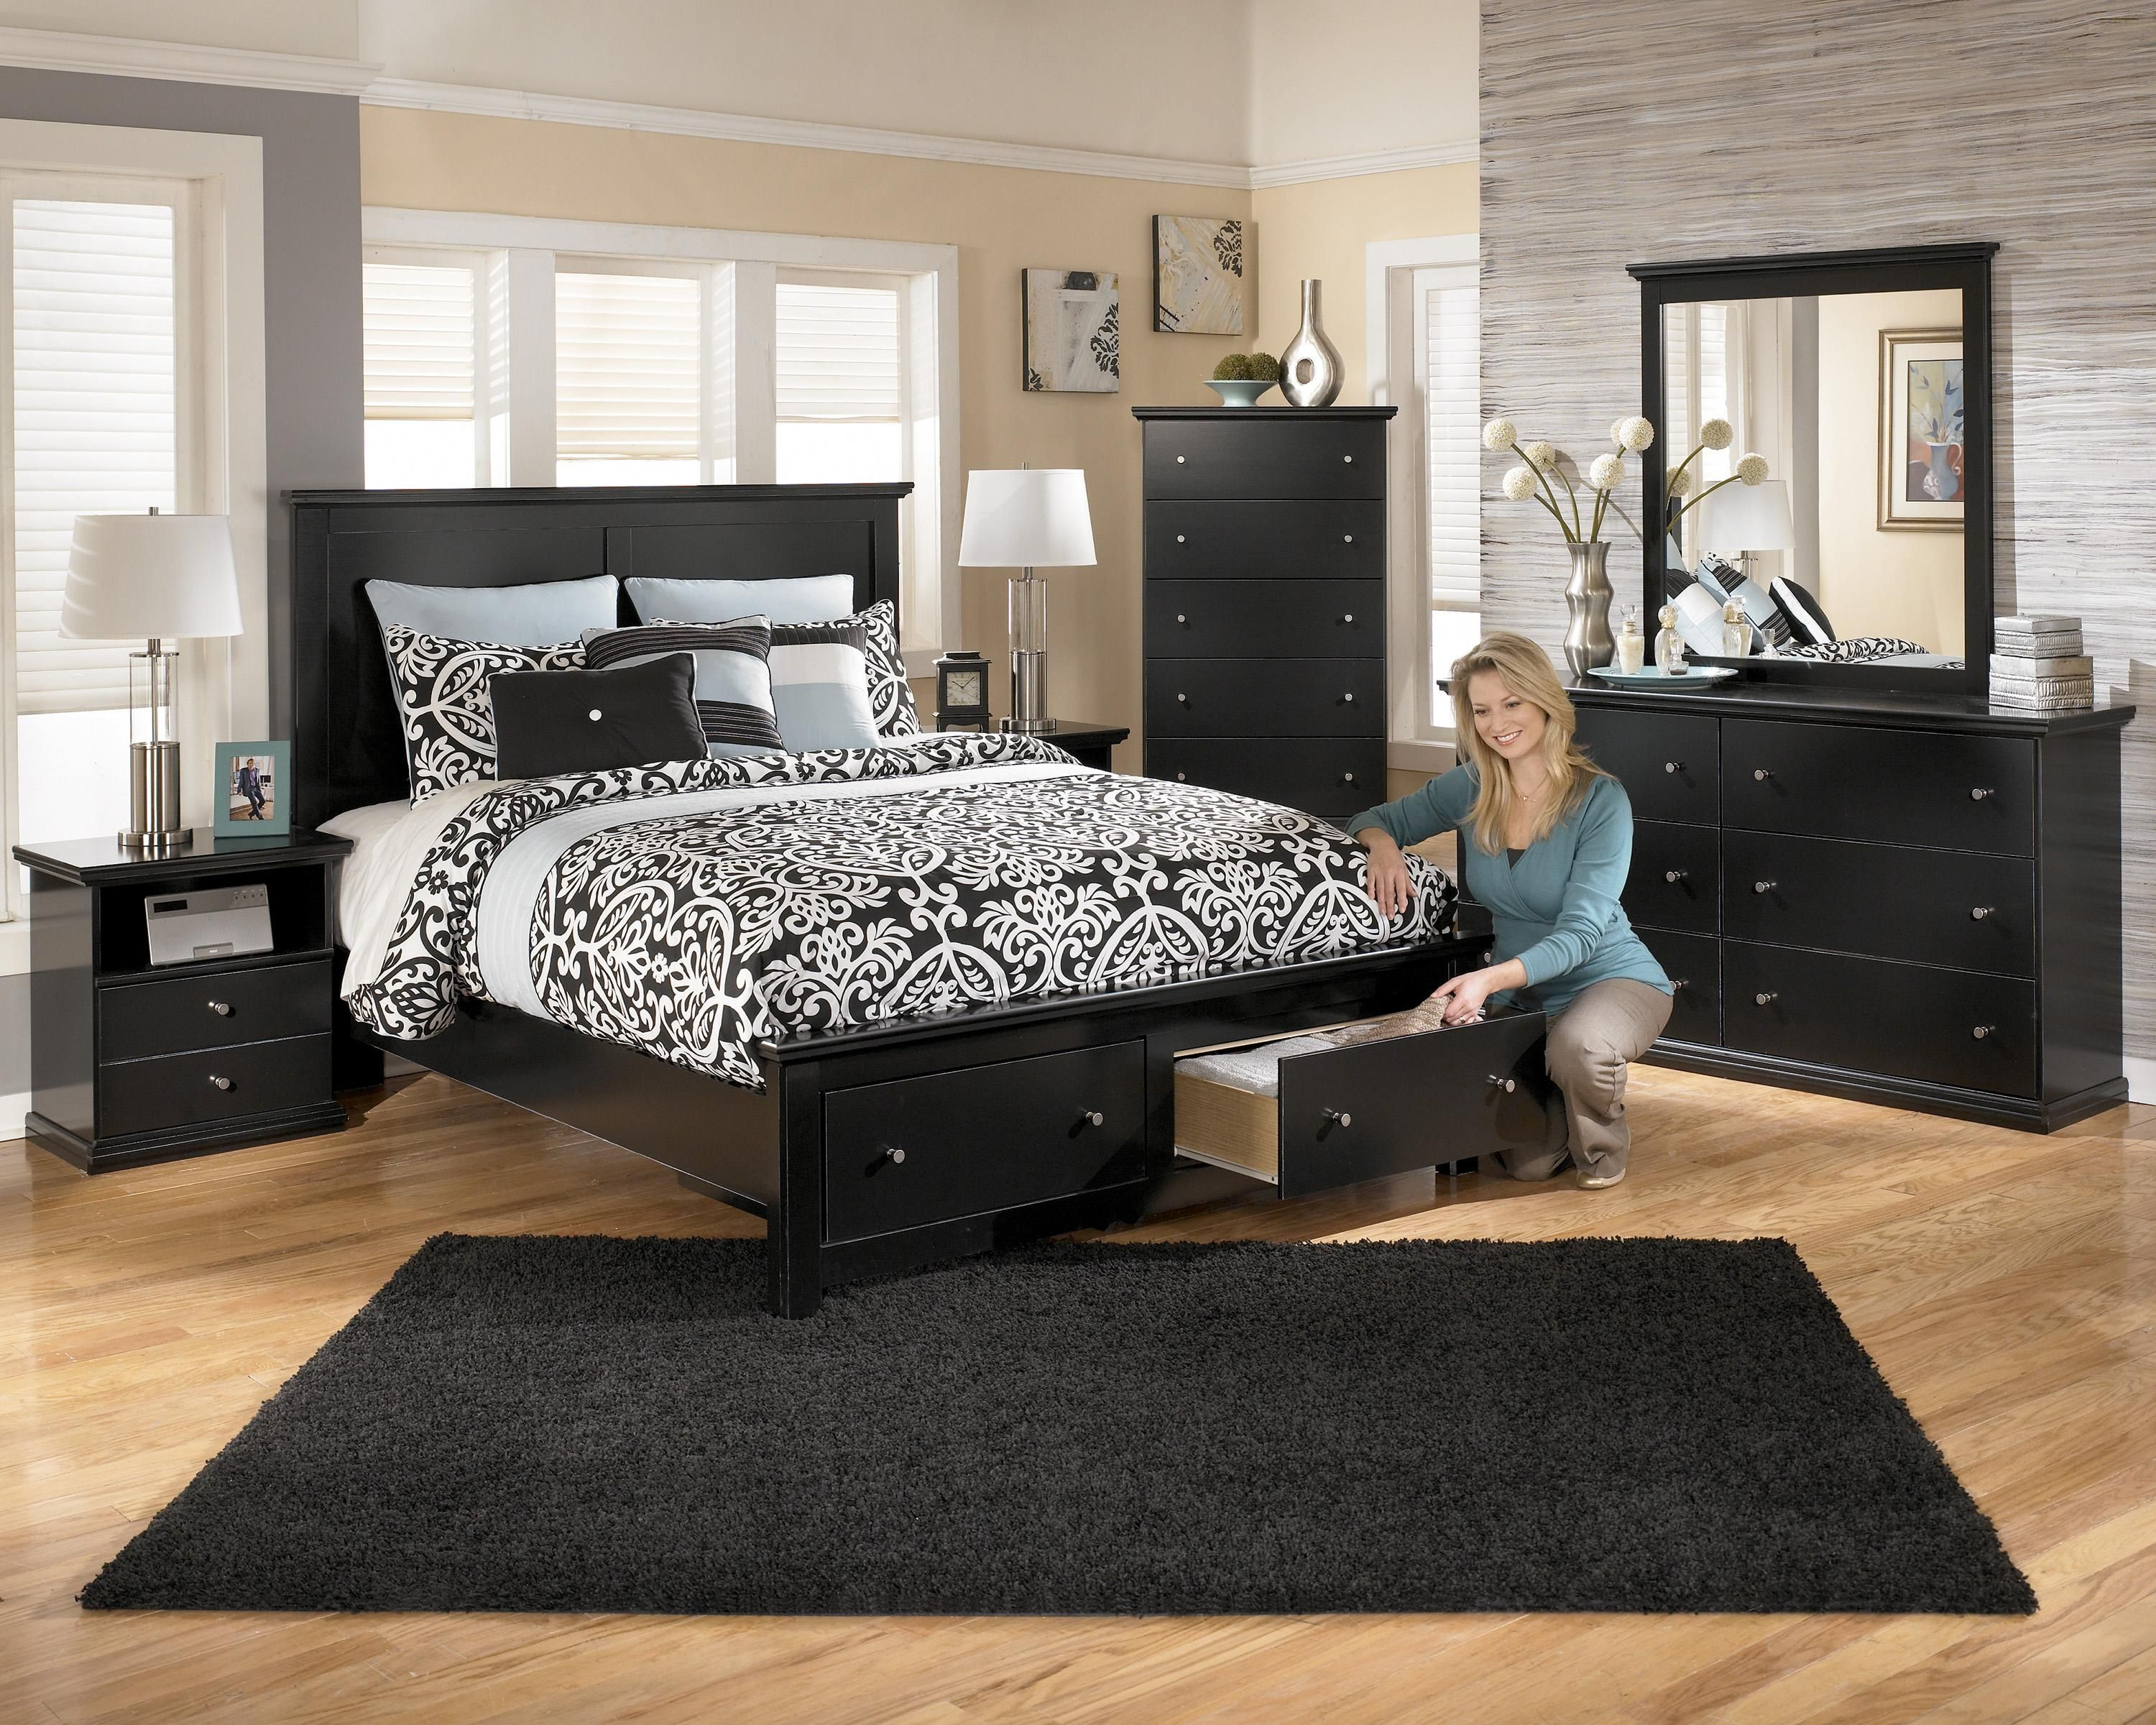 finished img the mattress foot now square than store less to double of floor first space your percentage case how shows sales study occupies